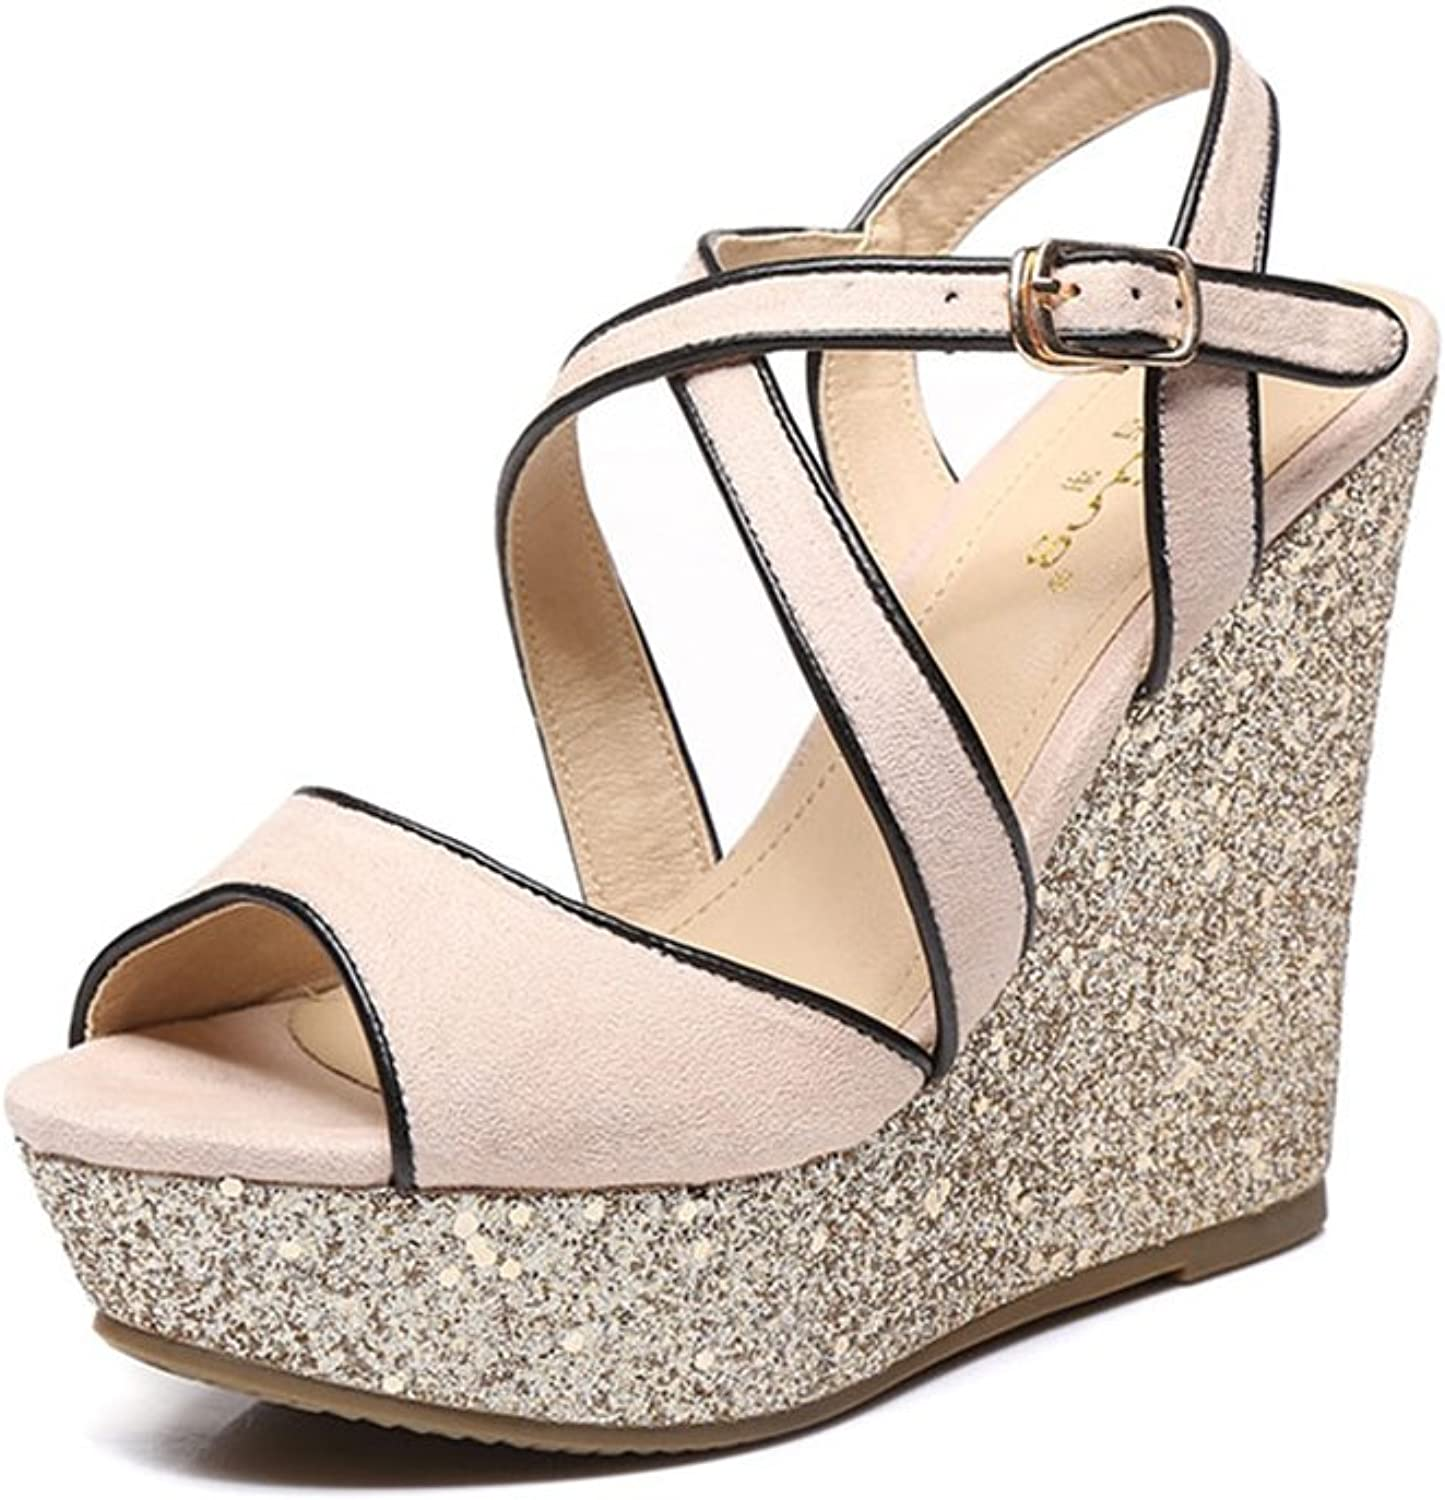 Summer New sandals Female Slope with Waterproof Platform high Heels Sequin Fashion Roman Style Small Size Female shoes (high 9cm and high 12cm) (color   12cm high, Size   39)